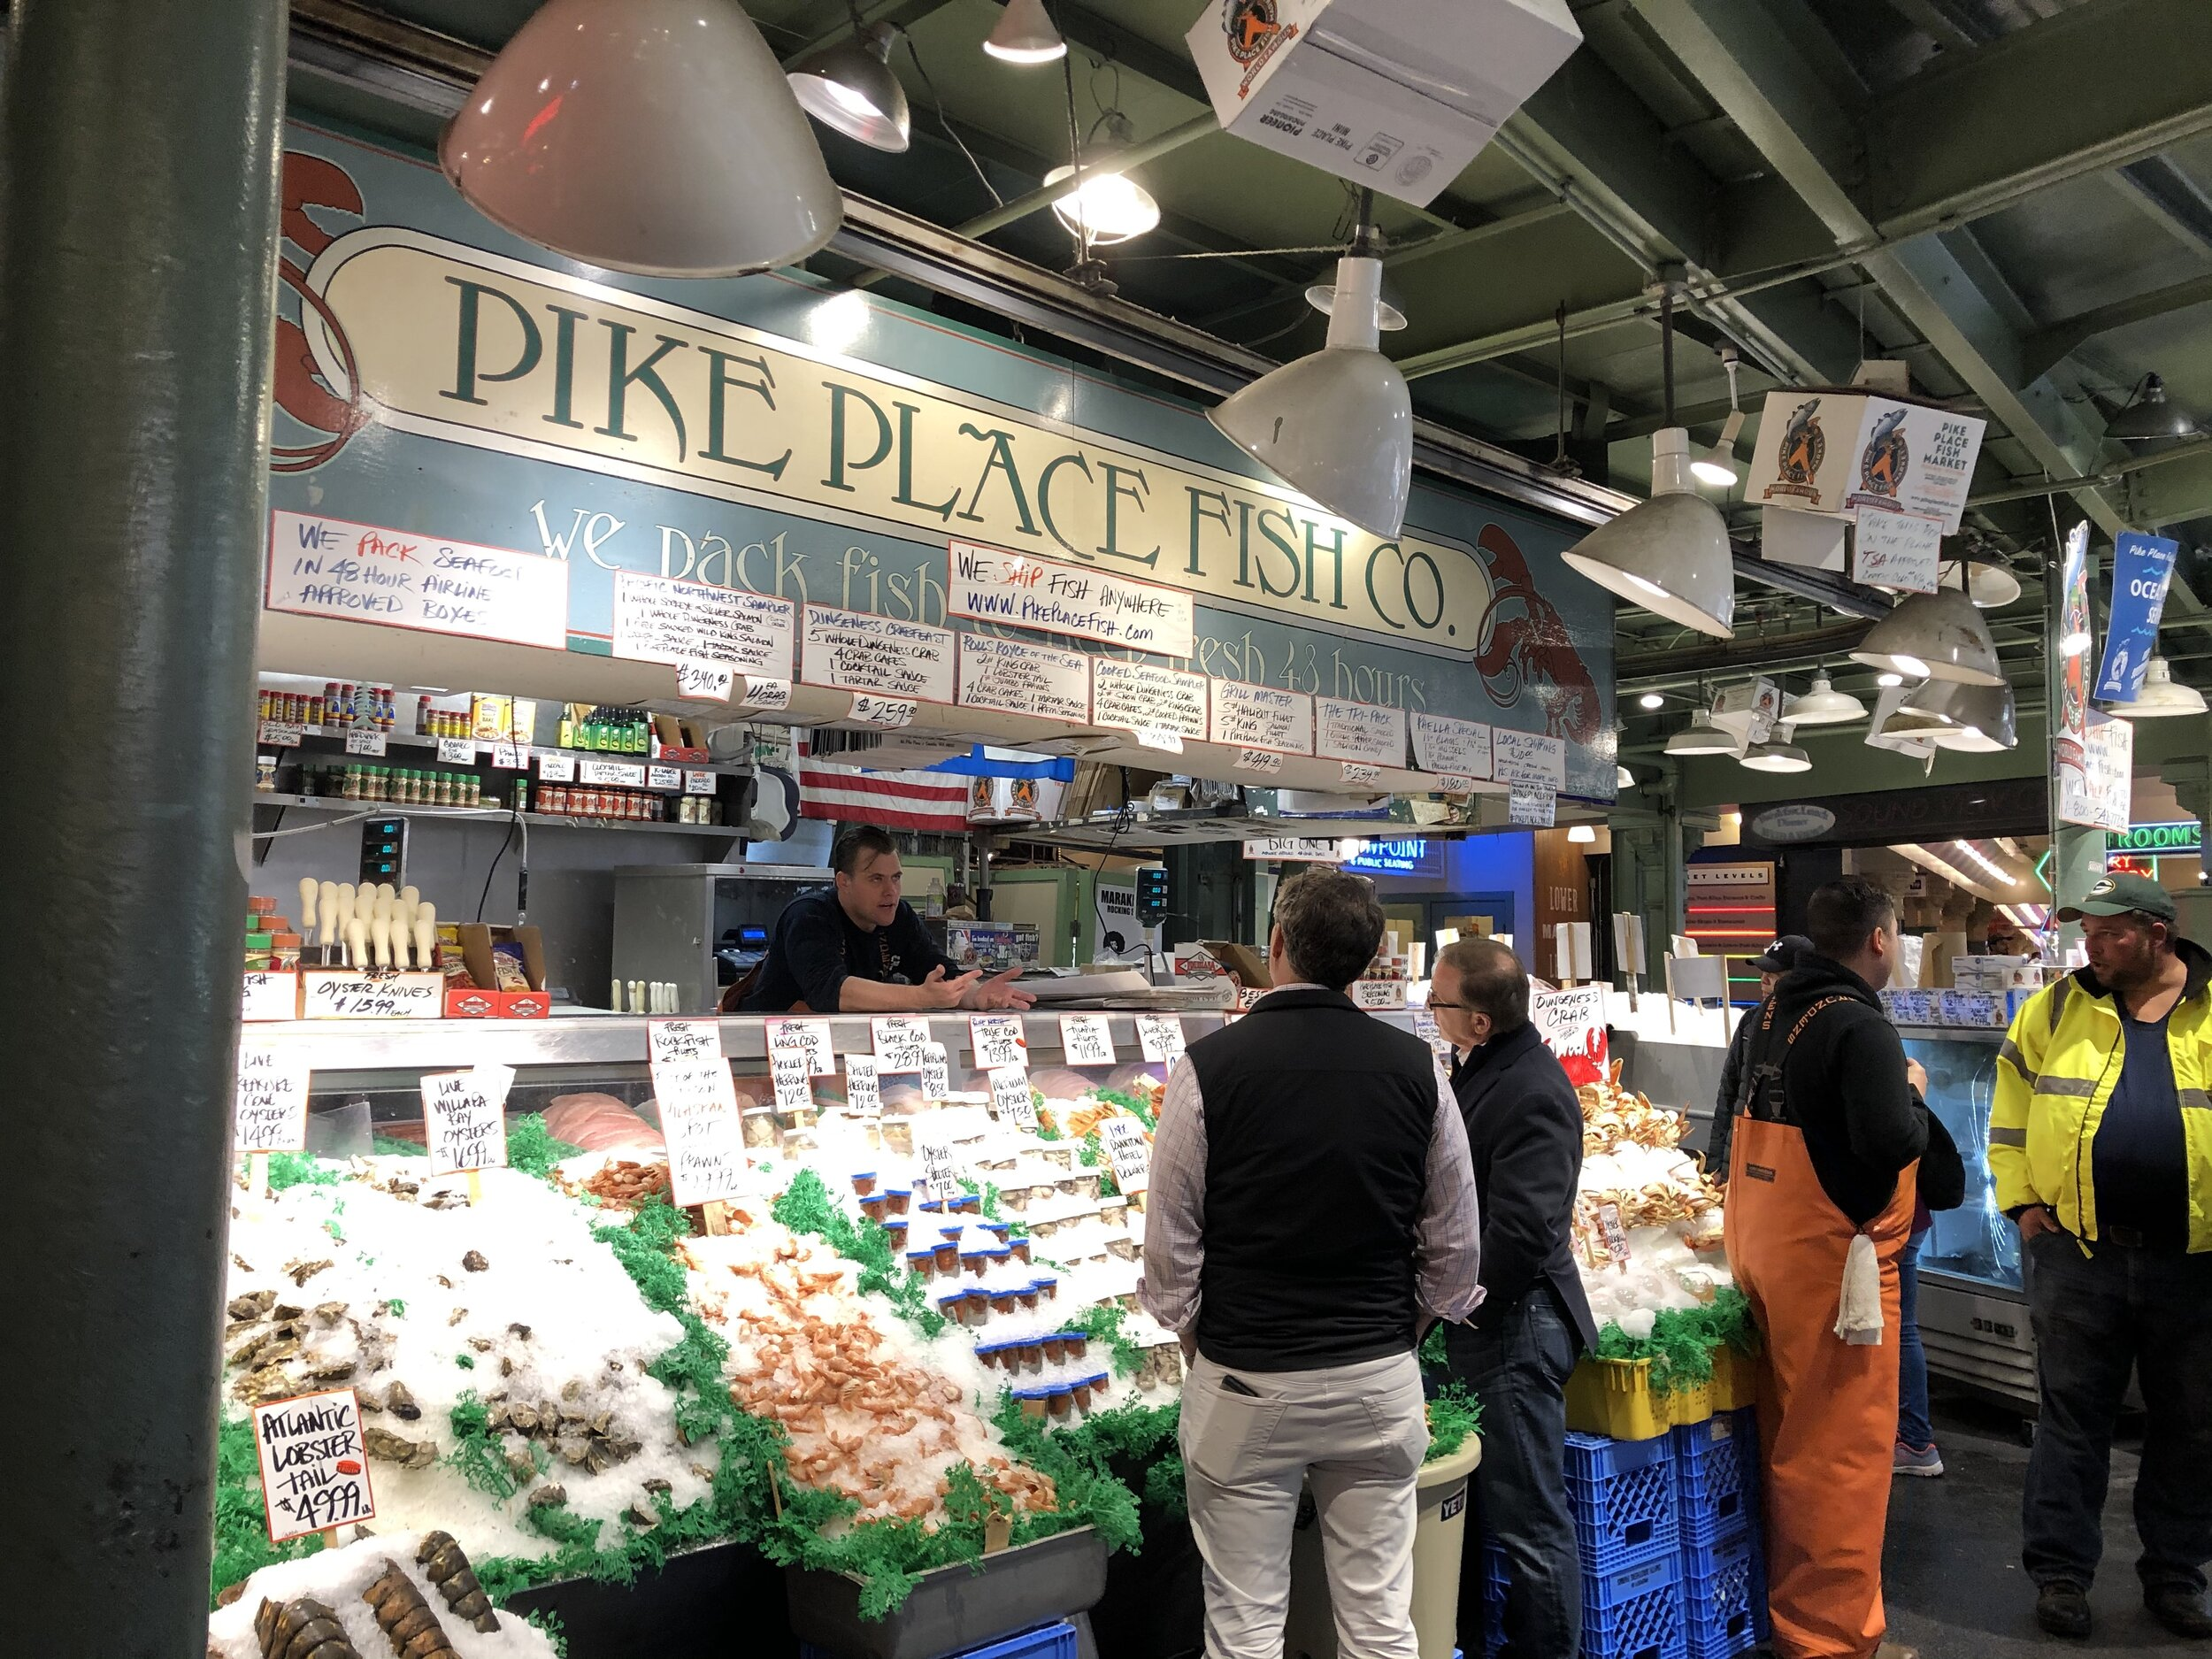 Employees engaging customers at the Pike Place Fish Co.